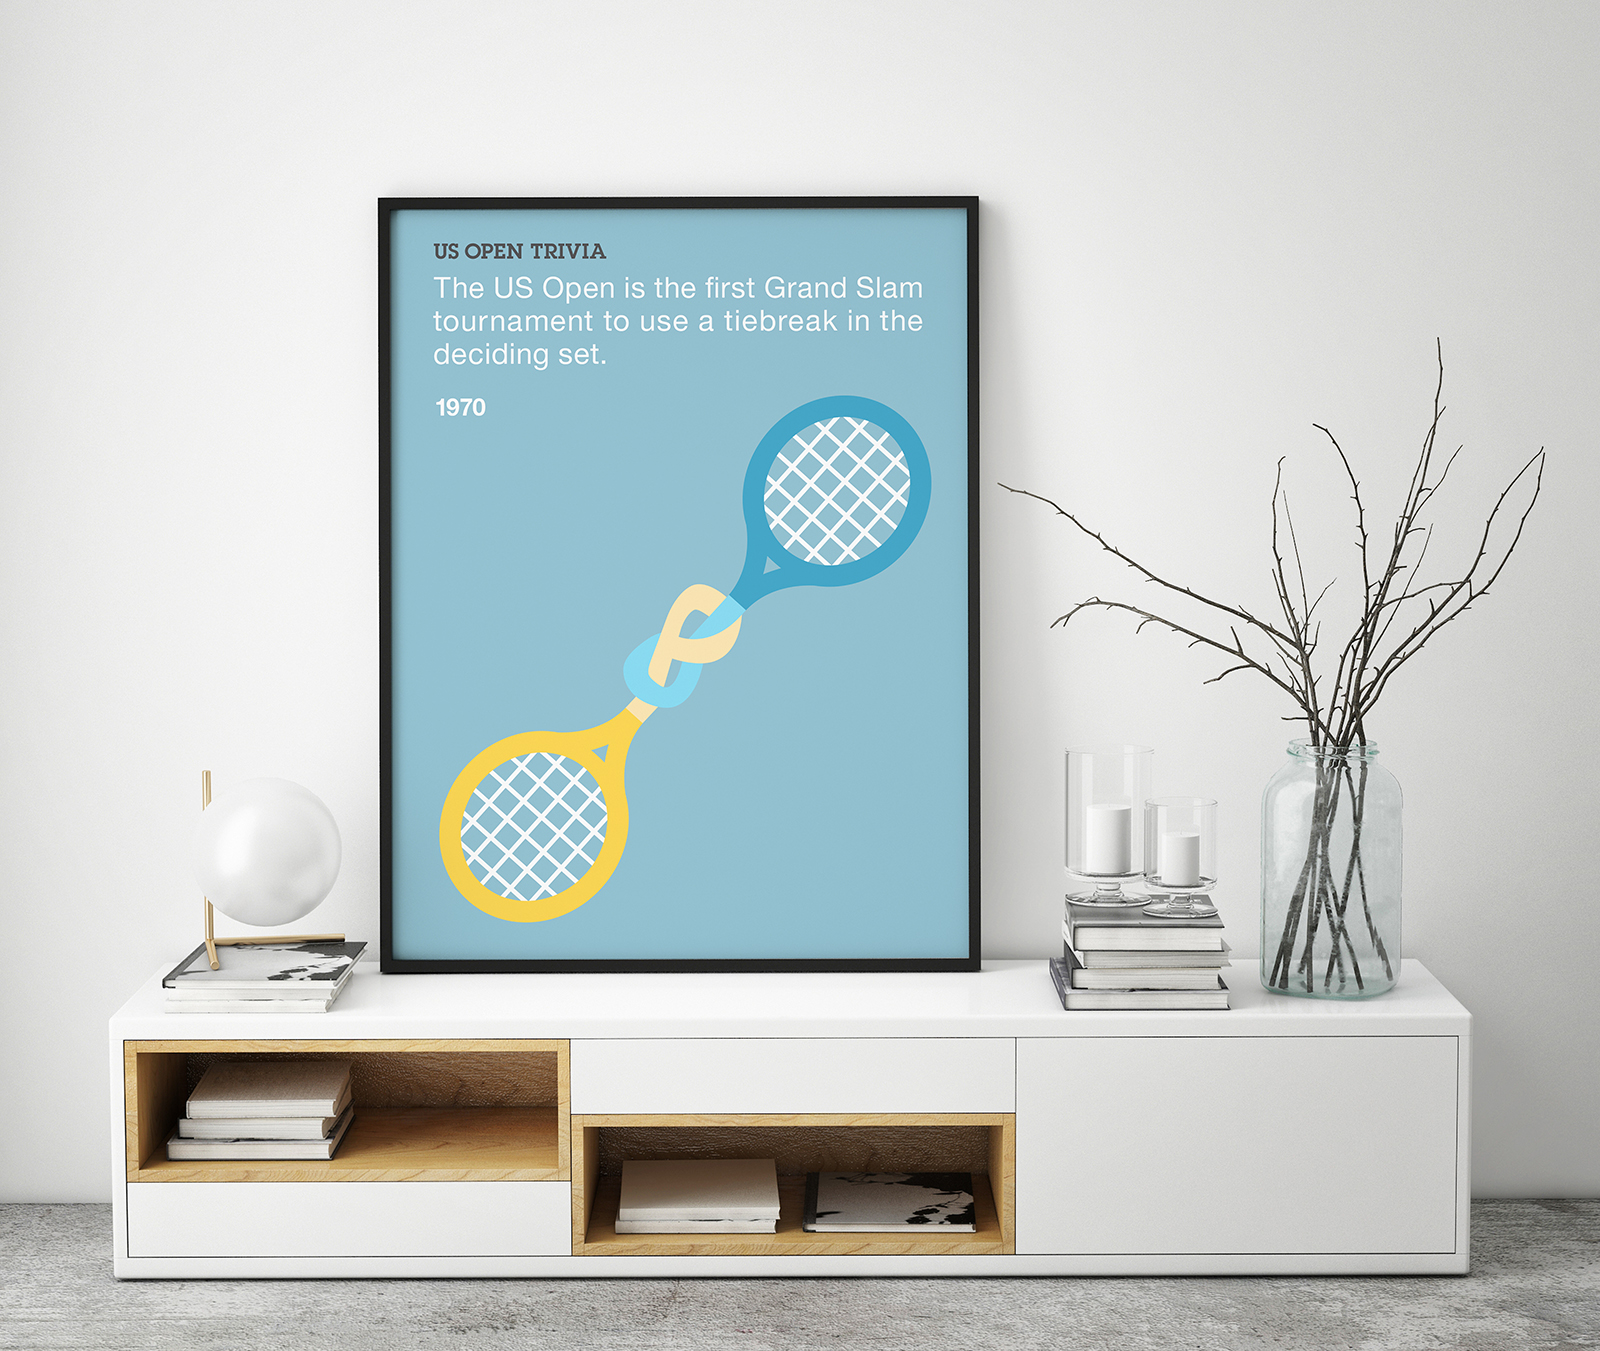 IBM for the US Open